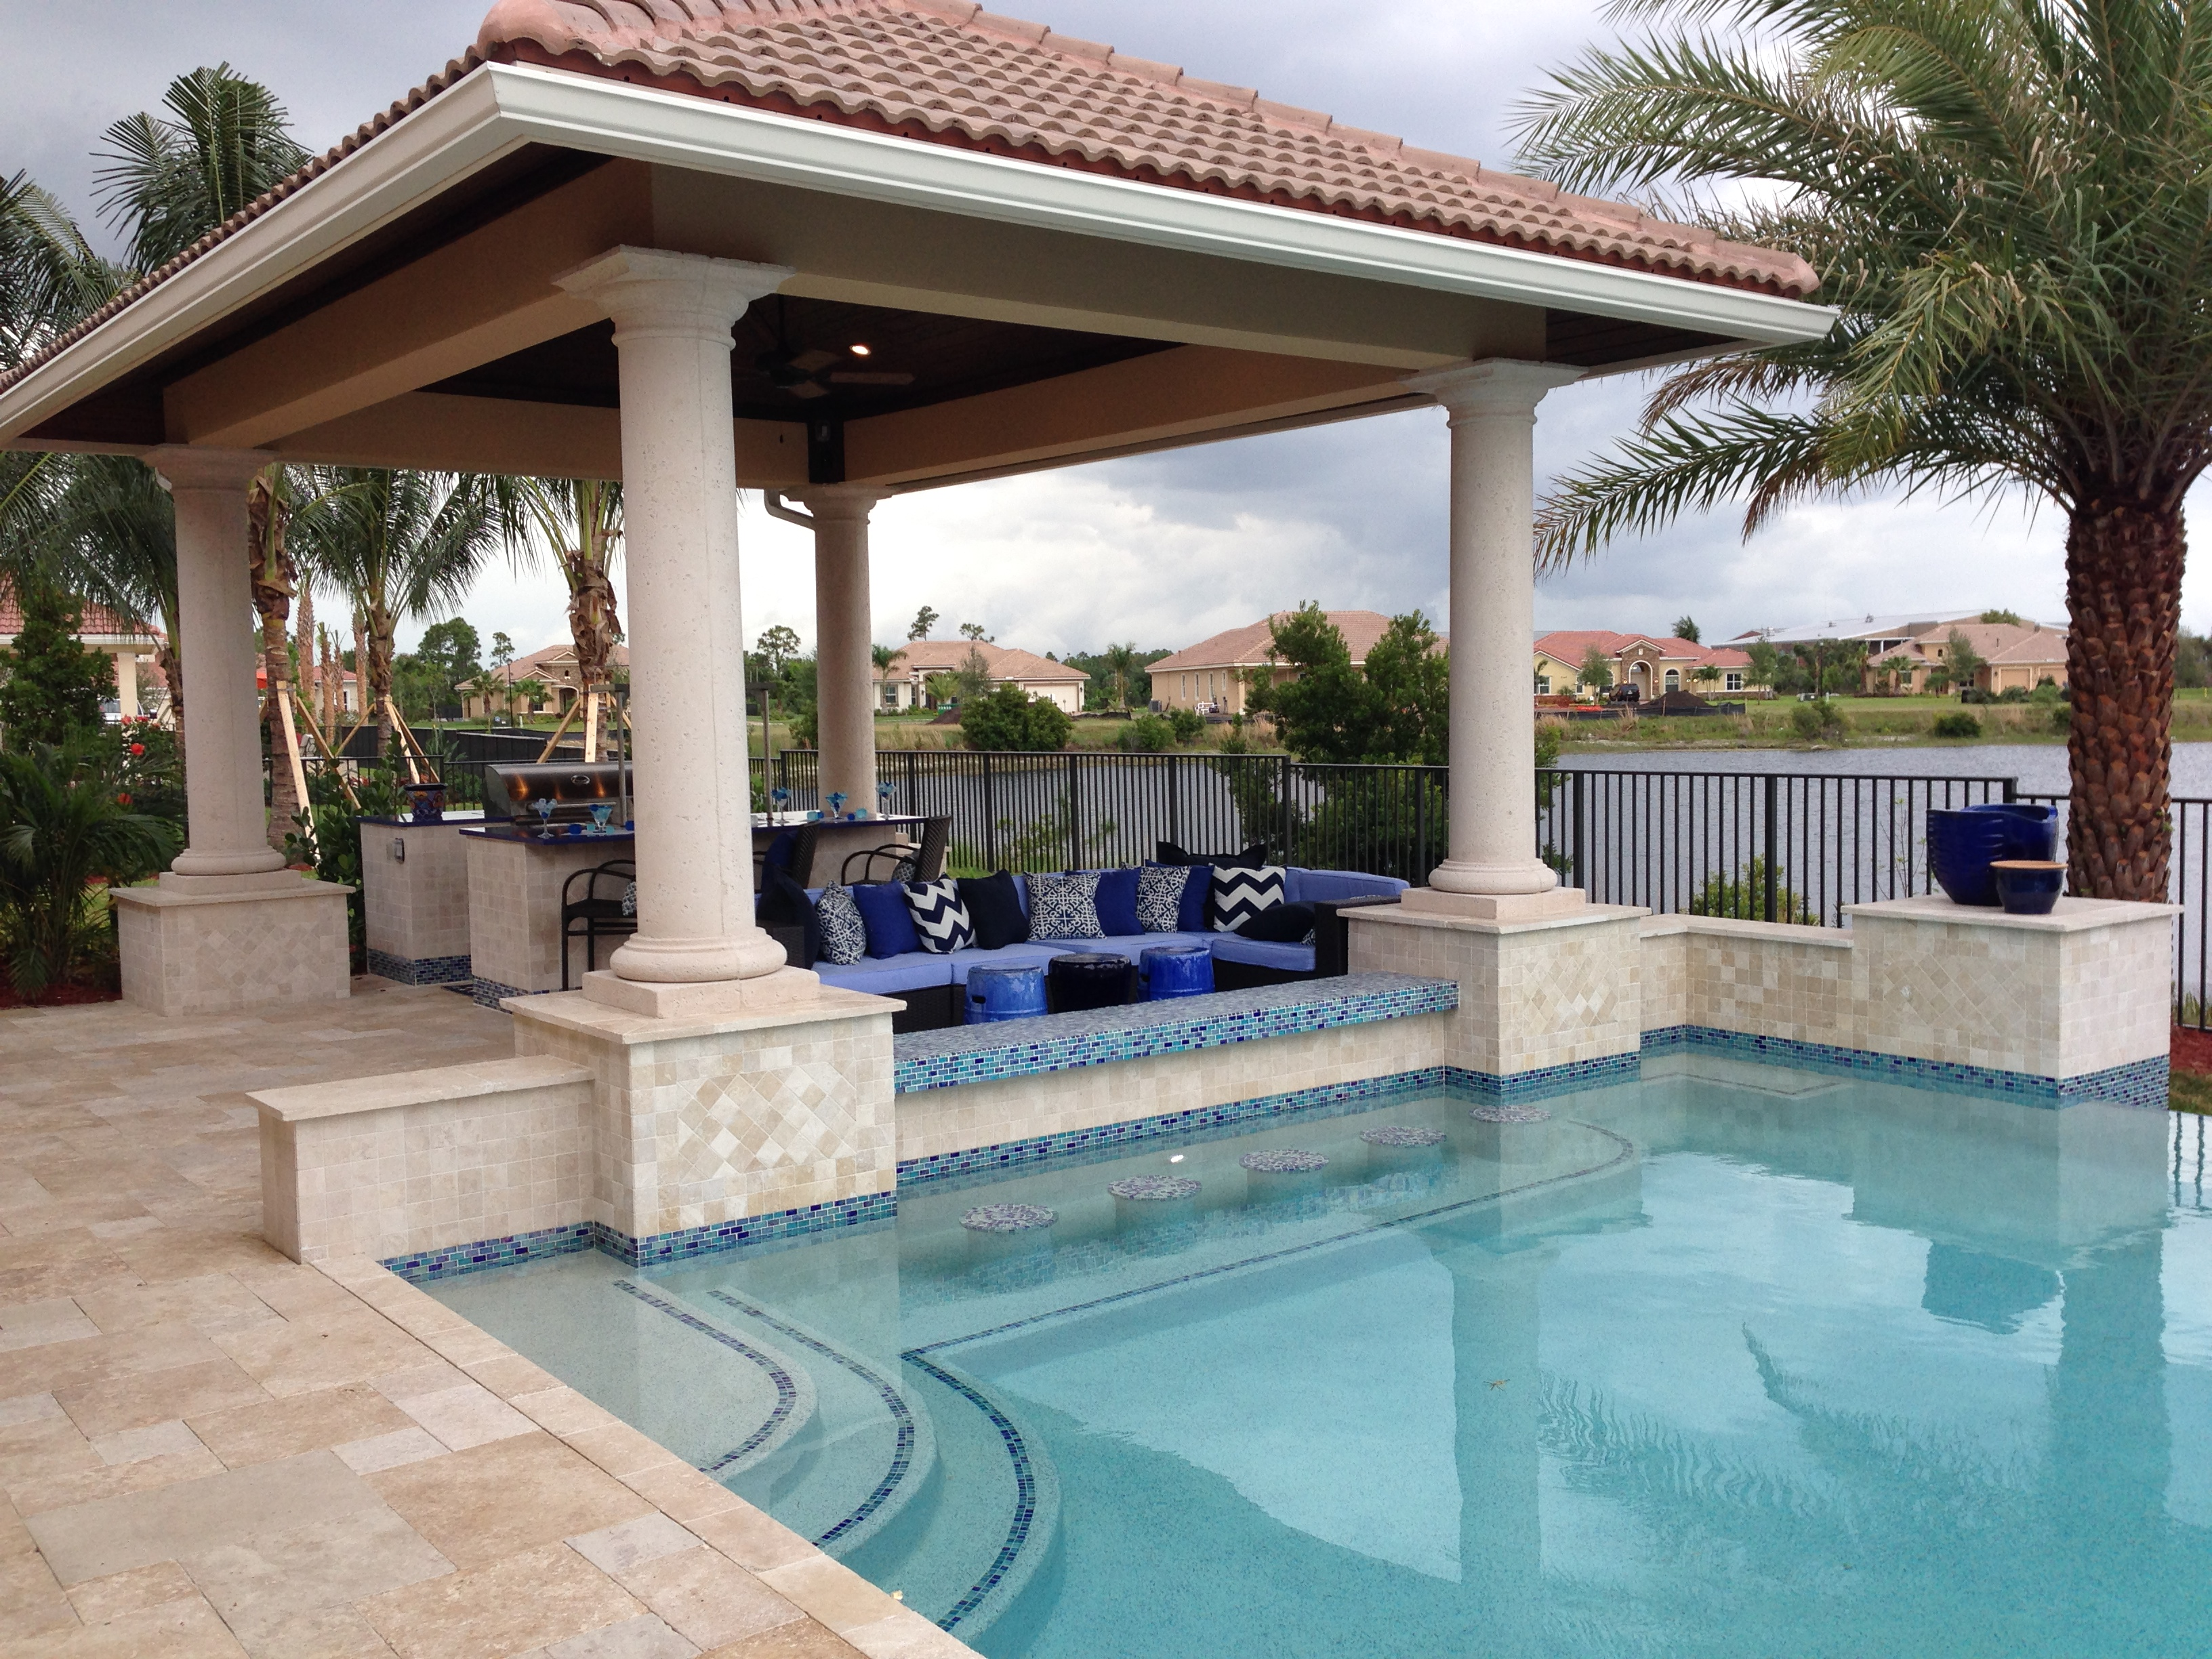 Residential Pool Construction : Residential pool construction in stuart fl a g